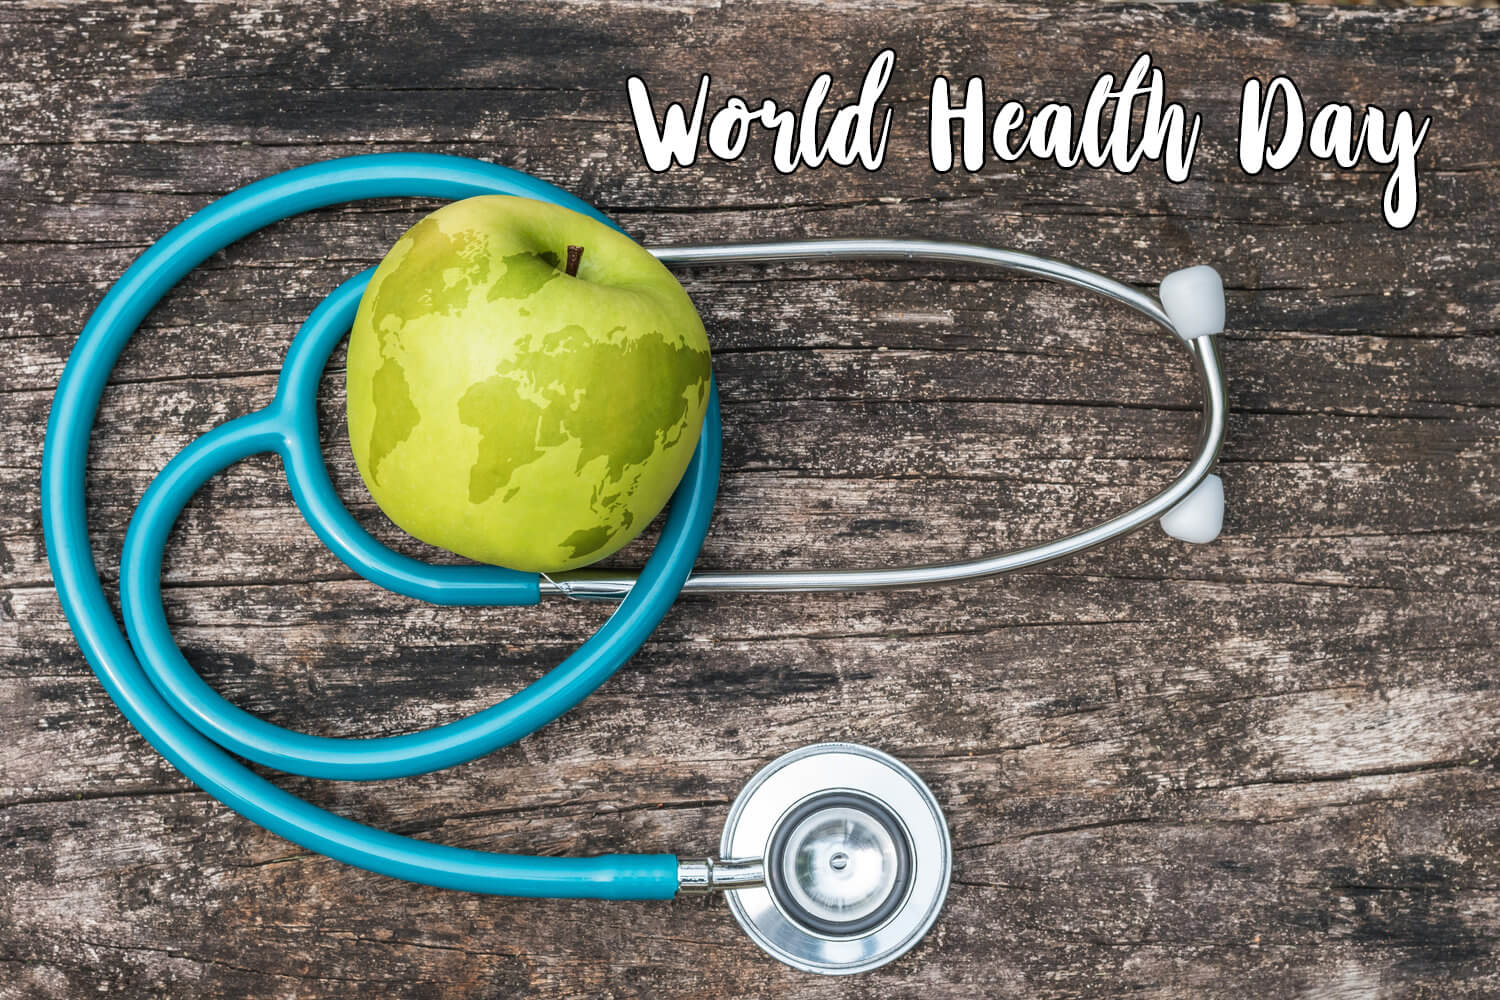 happy world health day apple globe stethoscope hd wallpaper